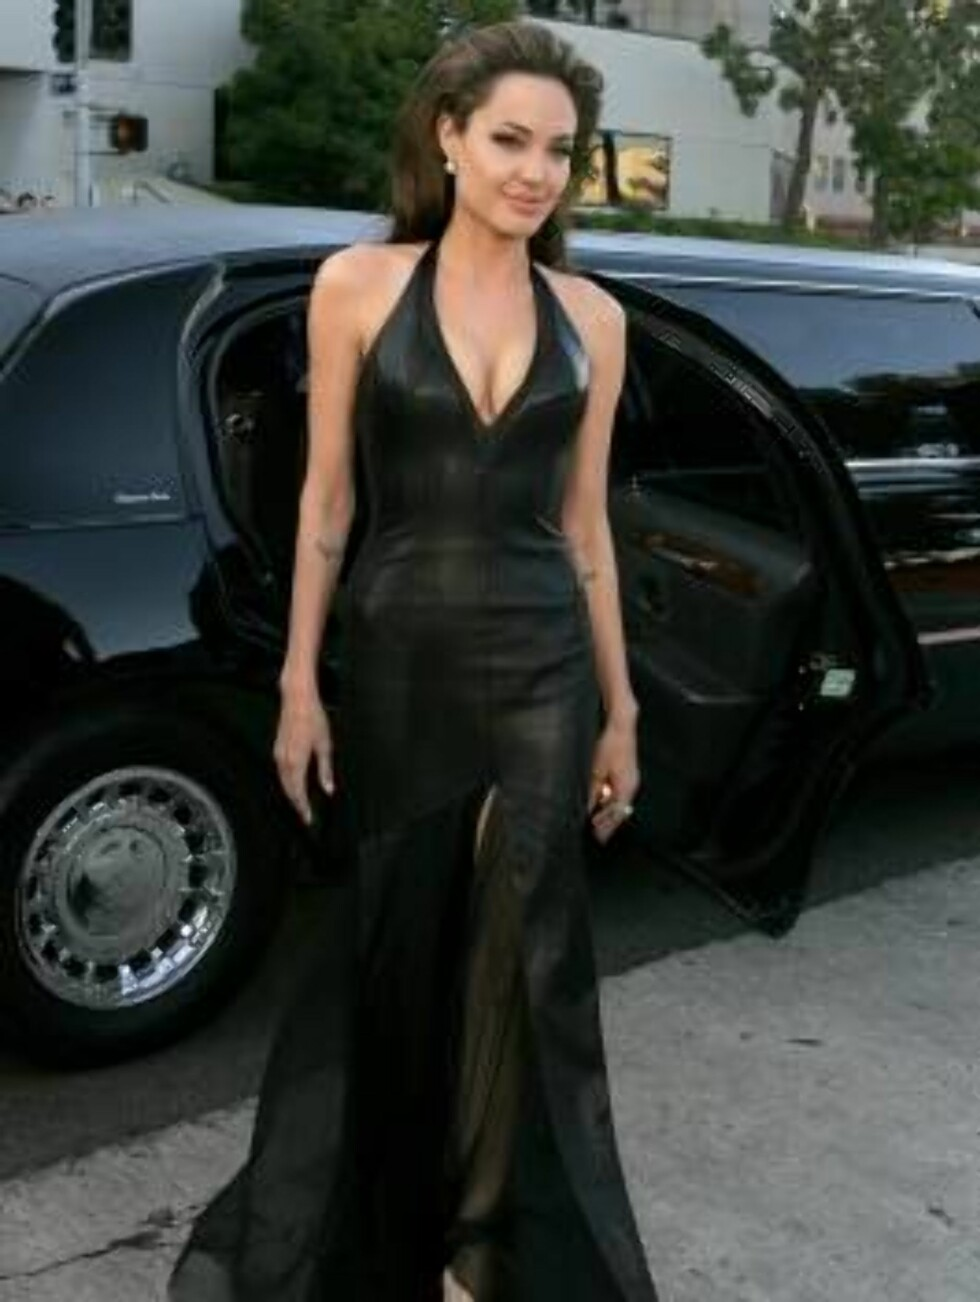 """WESTWOOD, CA - JUNE 07:  Actress Angelina Jolie arrives at the premiere of """"Mr. & Mrs. Smith"""" at the Mann Village Theater on June 7, 2005 in Westwood, California.  (Photo by Kevin Winter/Getty Images) / ALL OVER PRESS53026936KW096_20th_Century_ *** Local Foto: All Over Press"""